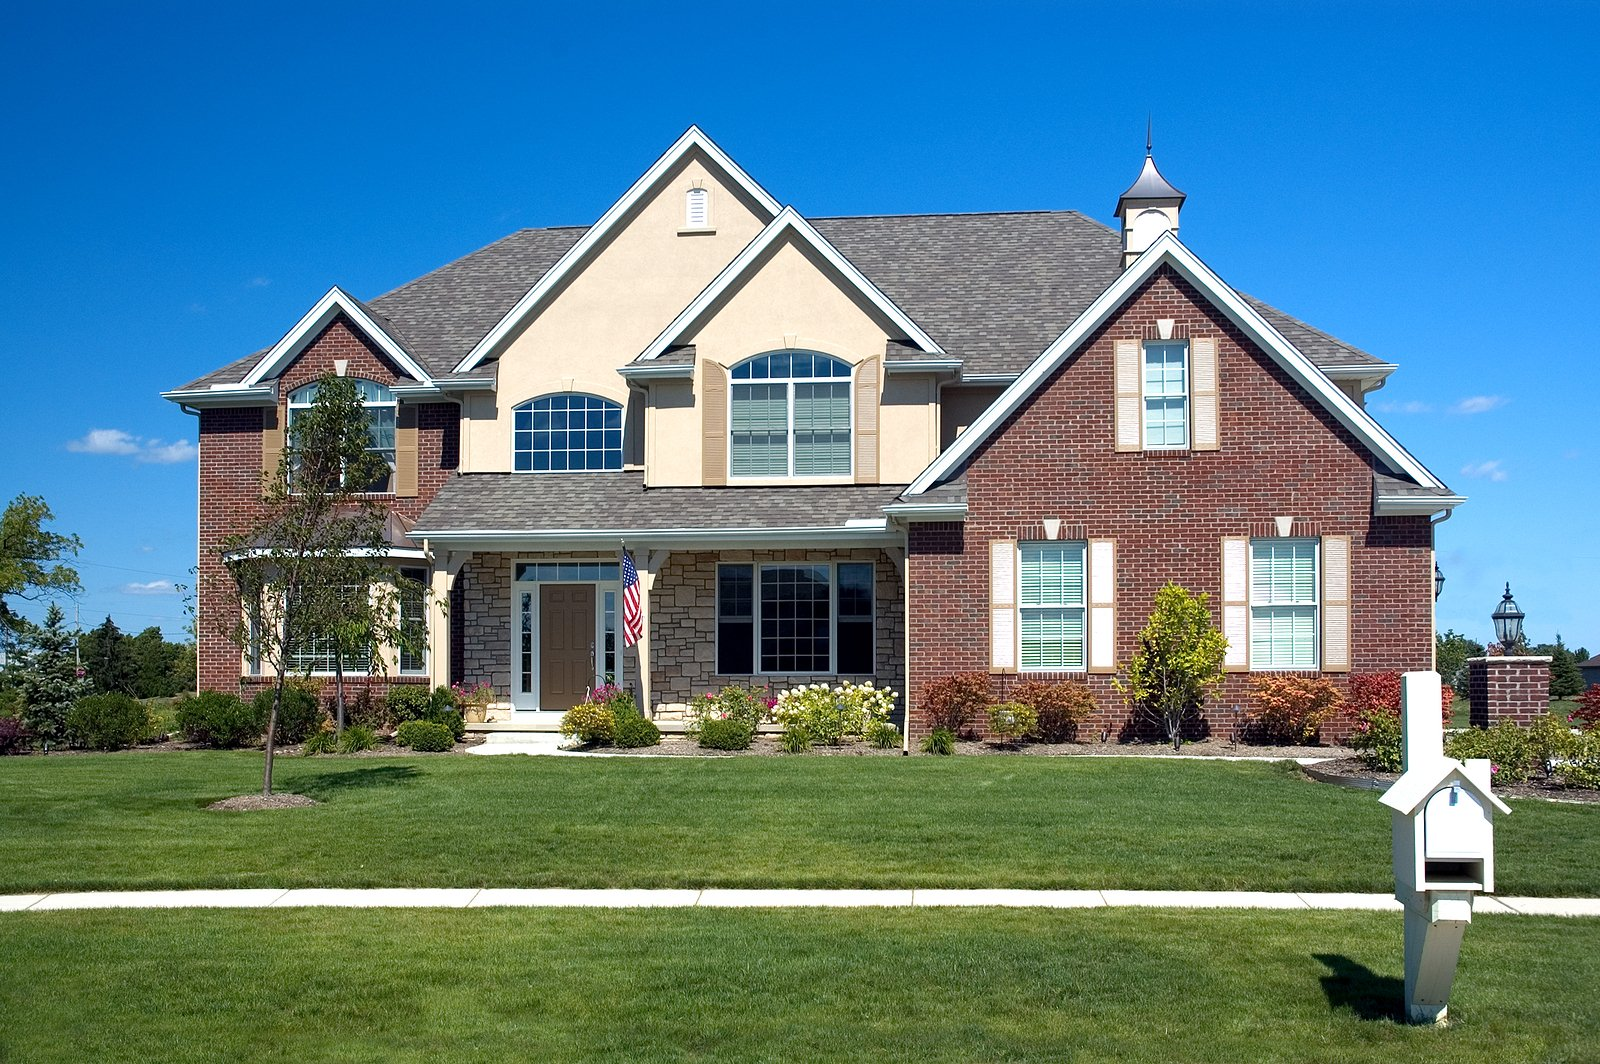 Residential Roofing Installation and Repair